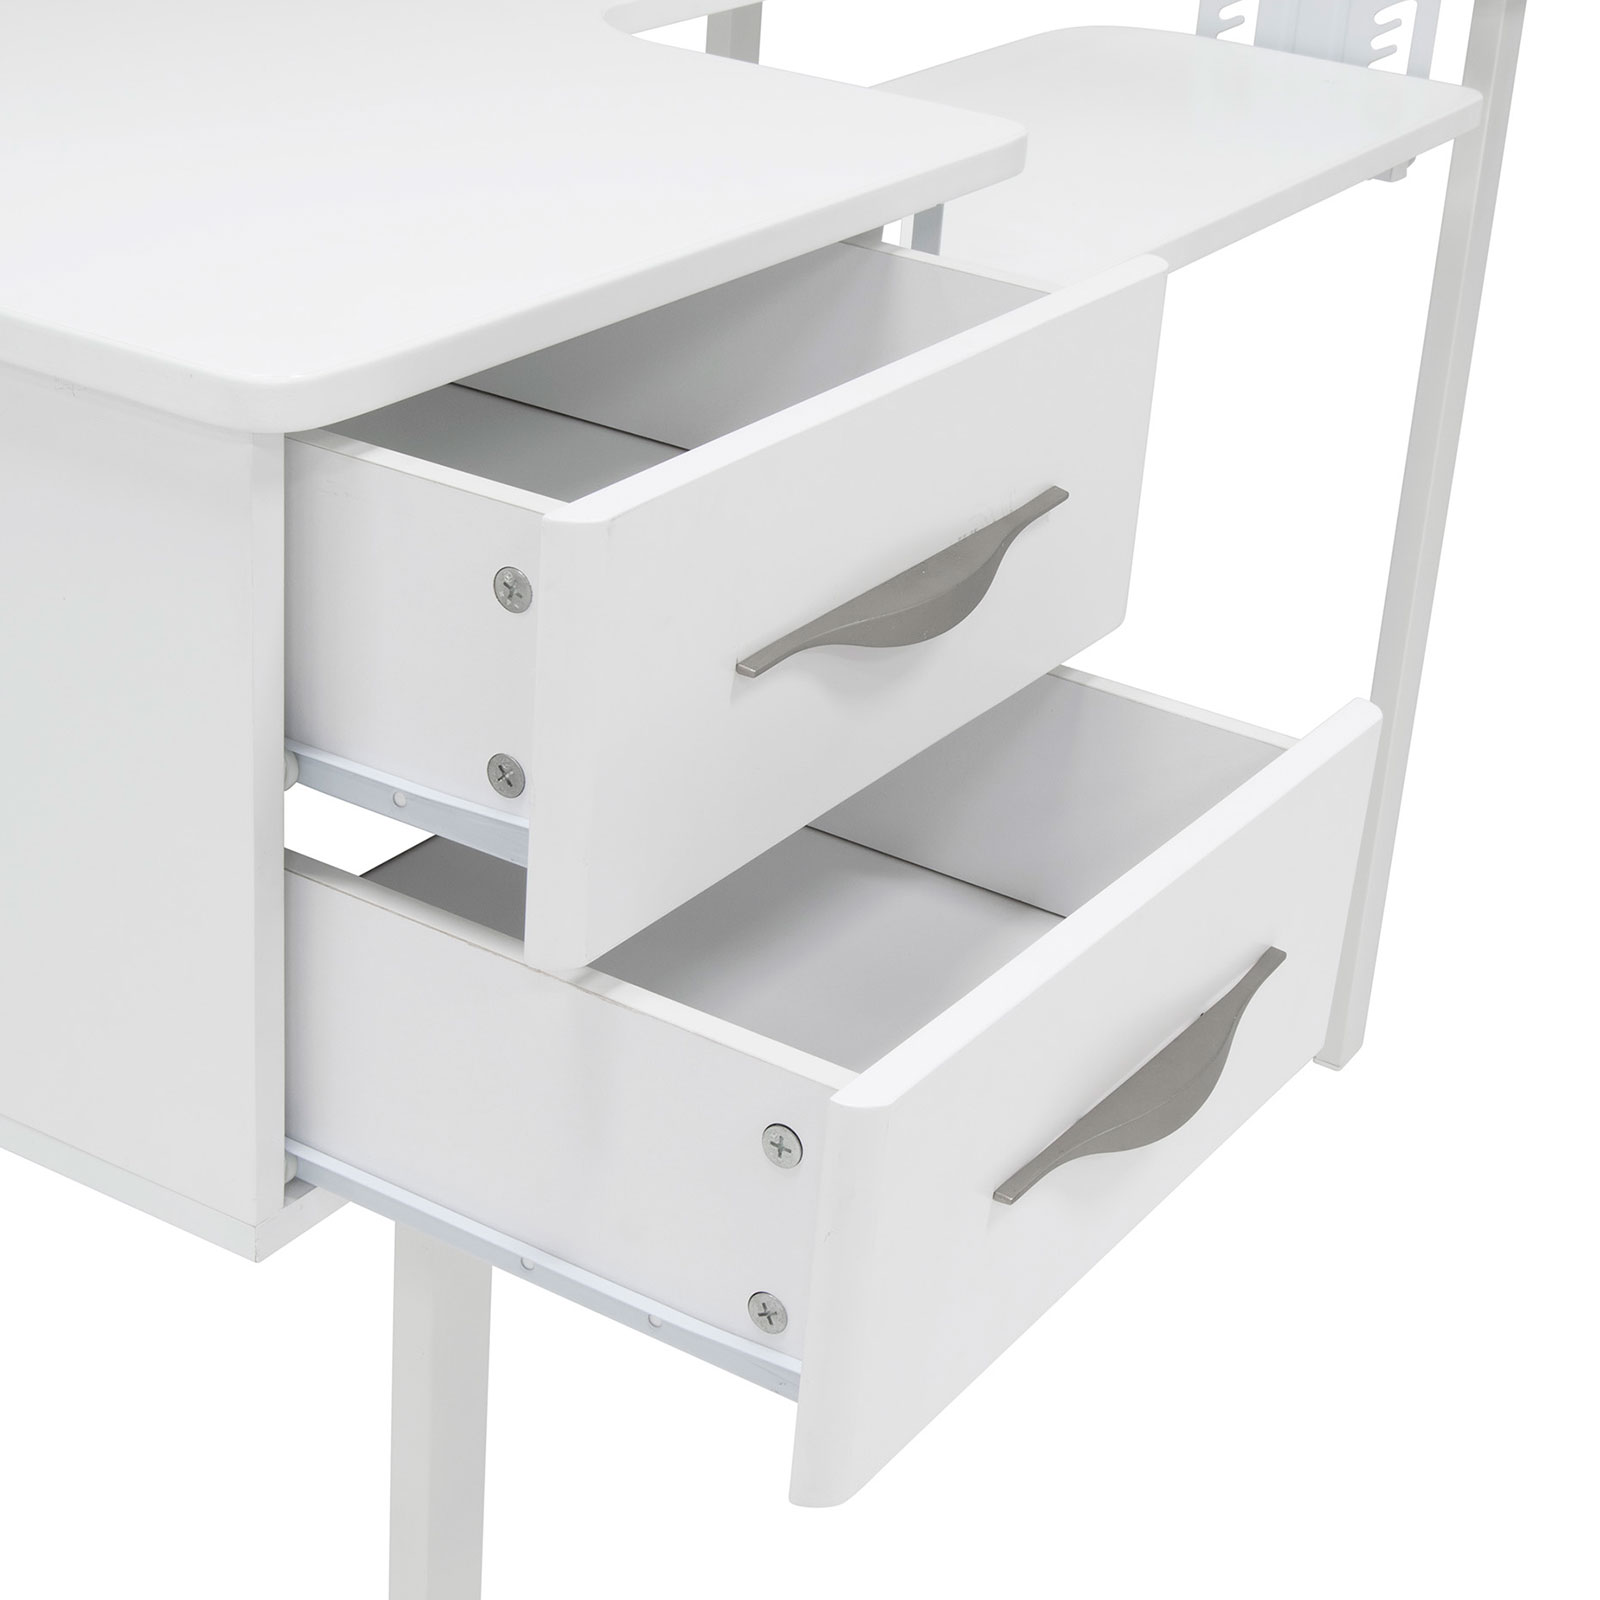 13398-Pro-Line-Sewing-Table-detail2